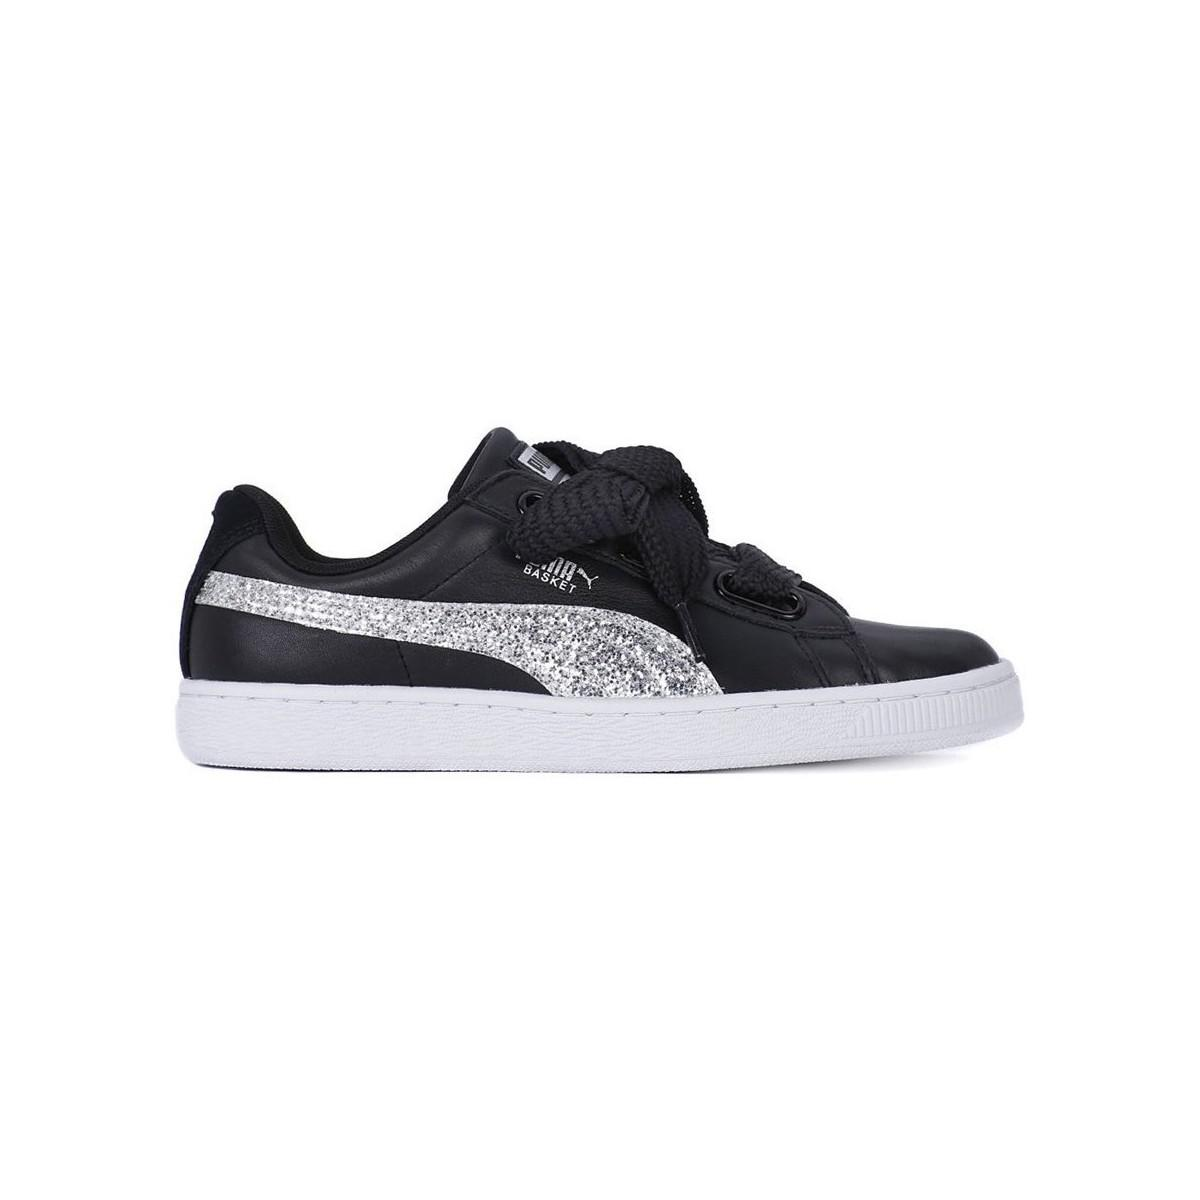 Genuine Cheap Sale Perfect Puma Basket Heart Glitter women's Shoes (Trainers) in Cheap Affordable nf9N78